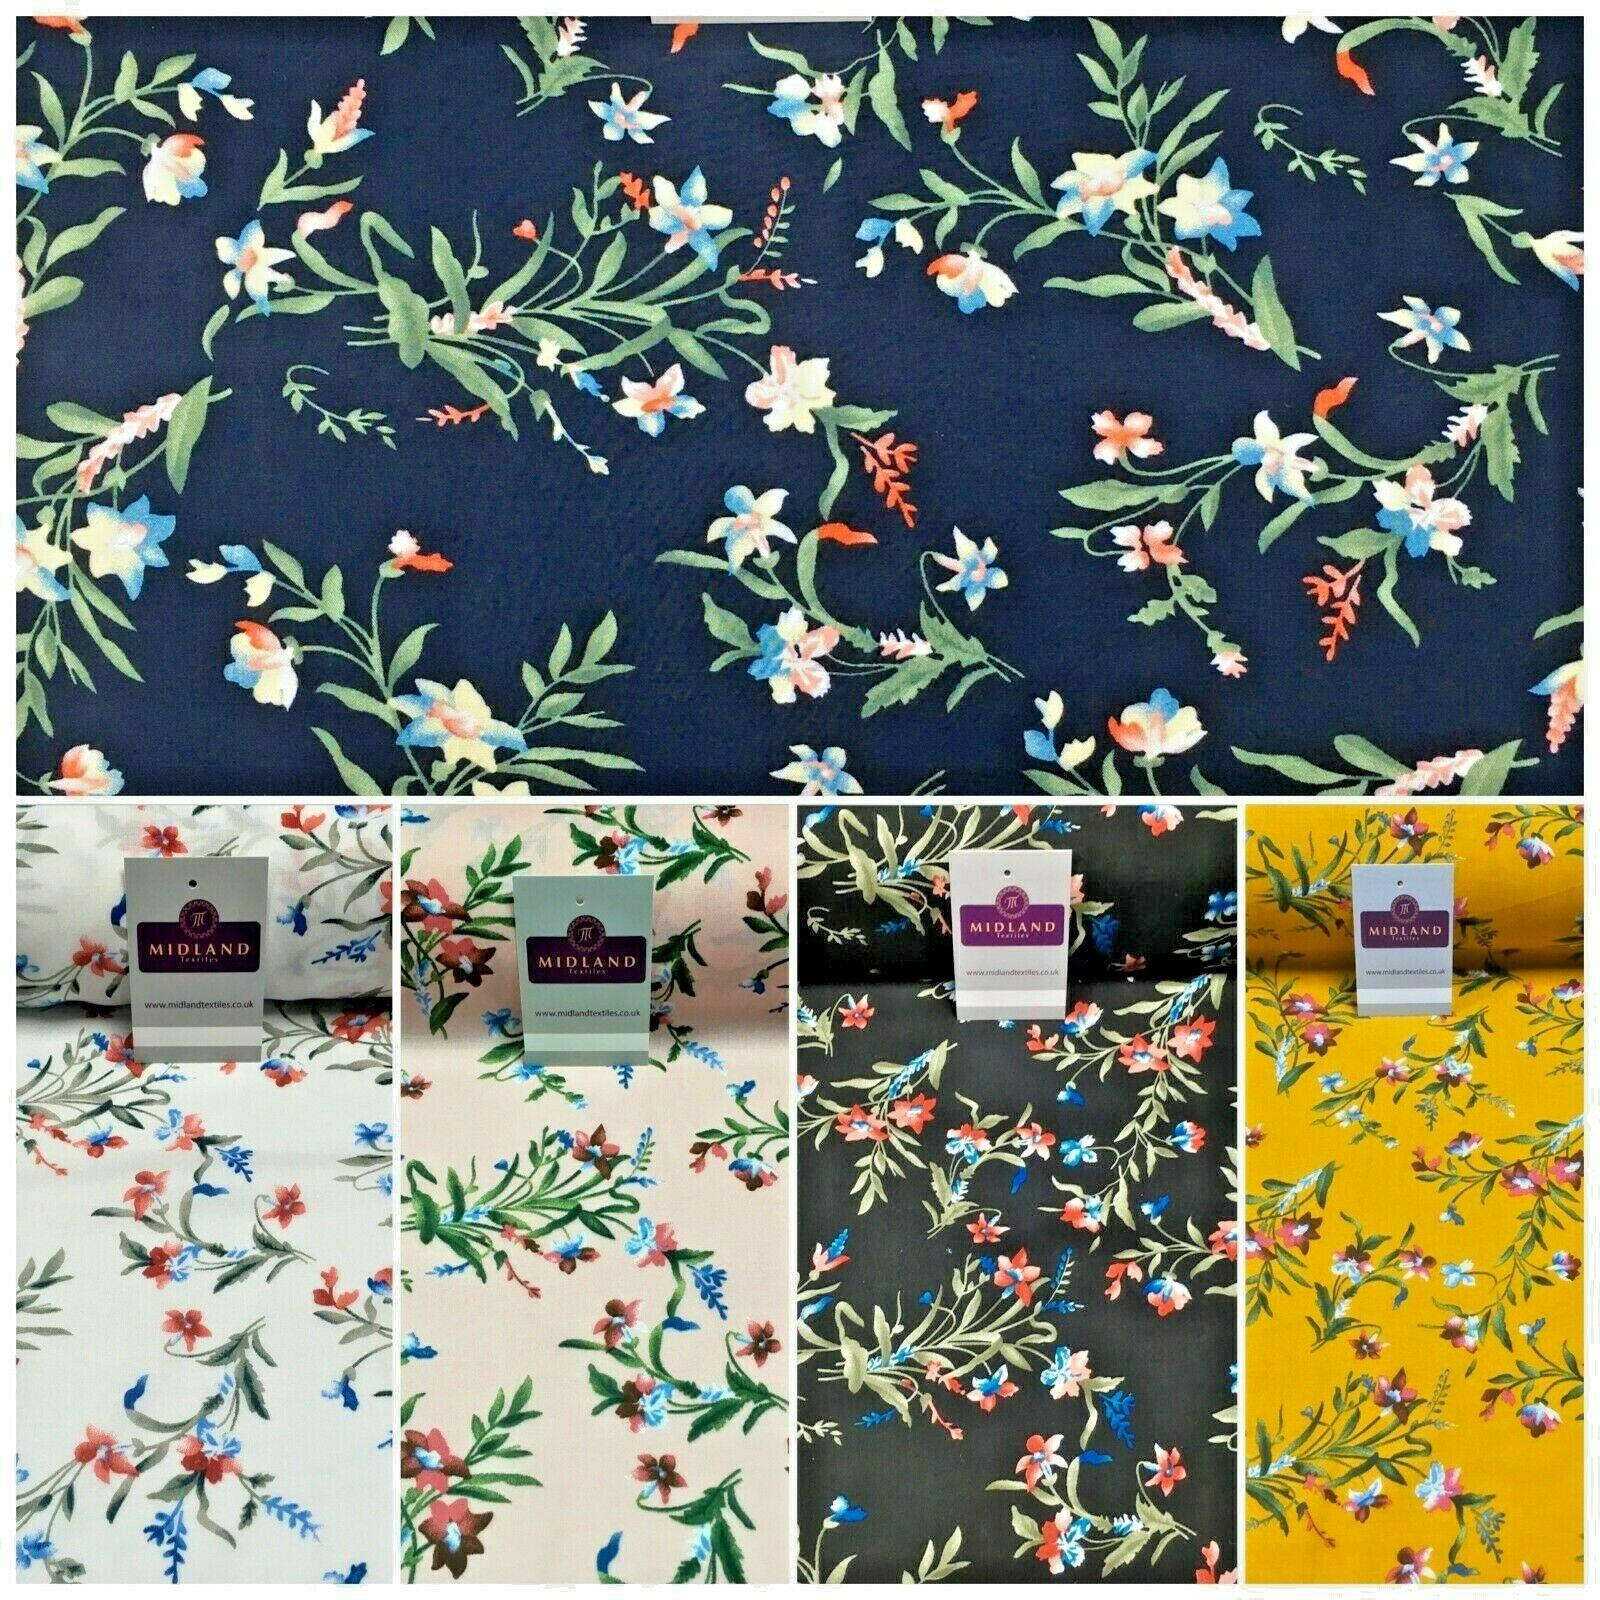 Floral Printed Rayon Viscose Poplin dress Fabric 150 cm MA1253 Mtex